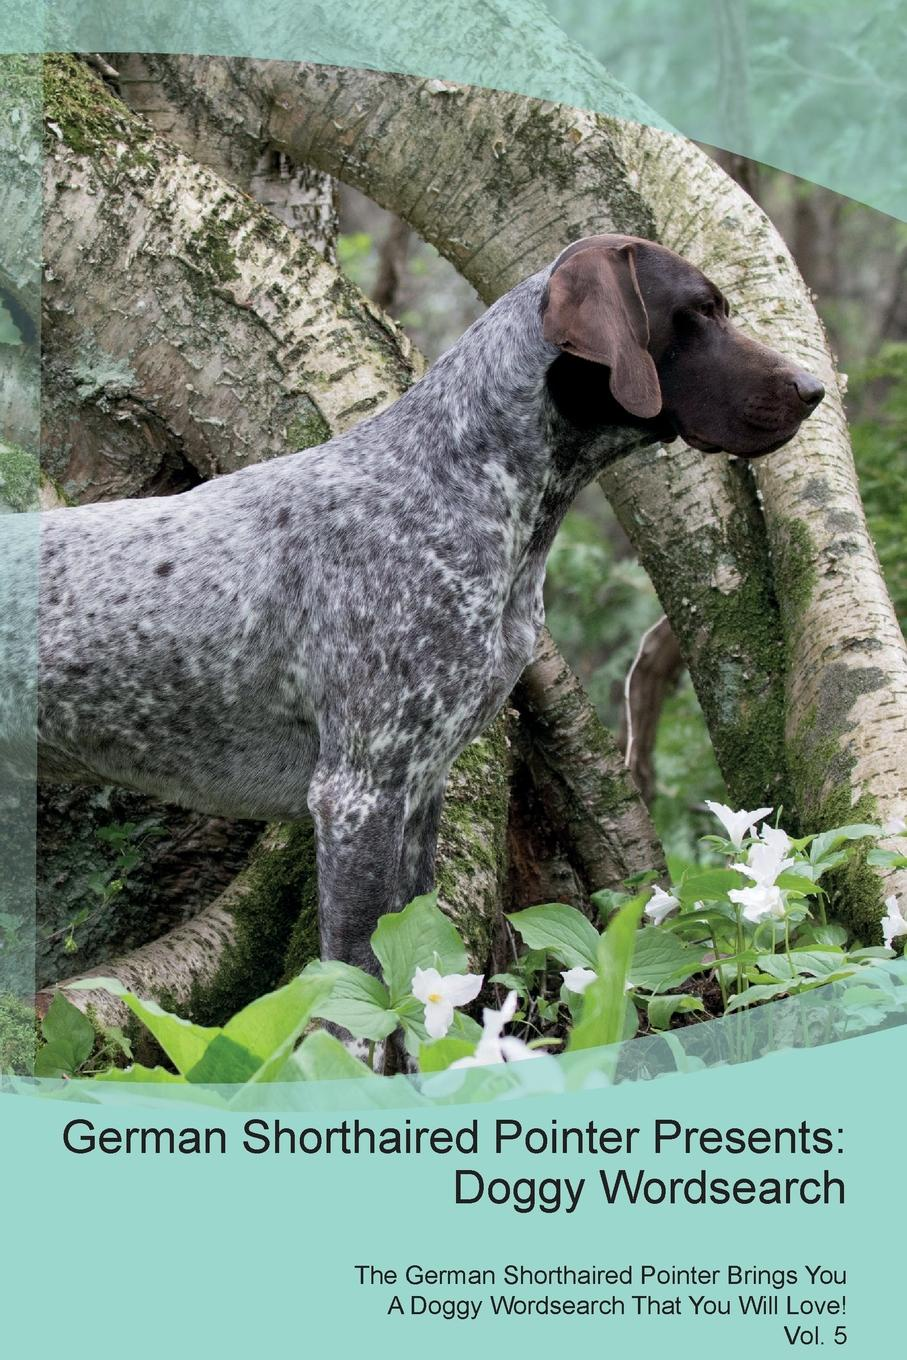 Doggy Puzzles German Shorthaired Pointer Presents. Wordsearch The Brings You A That Will Love! Vol. 5